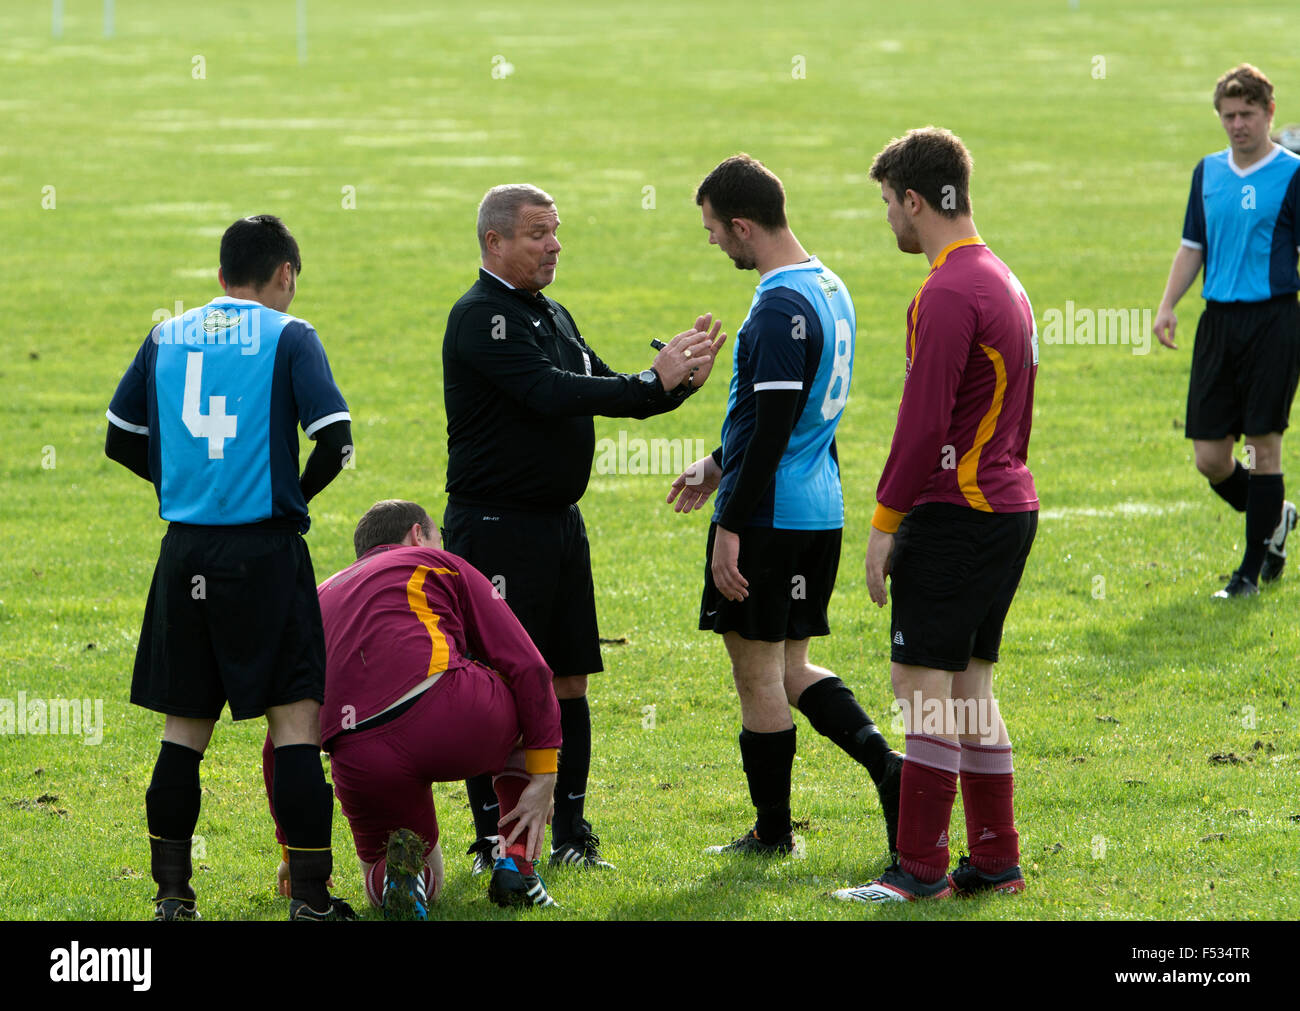 Sunday League football, referee talking to a player - Stock Image